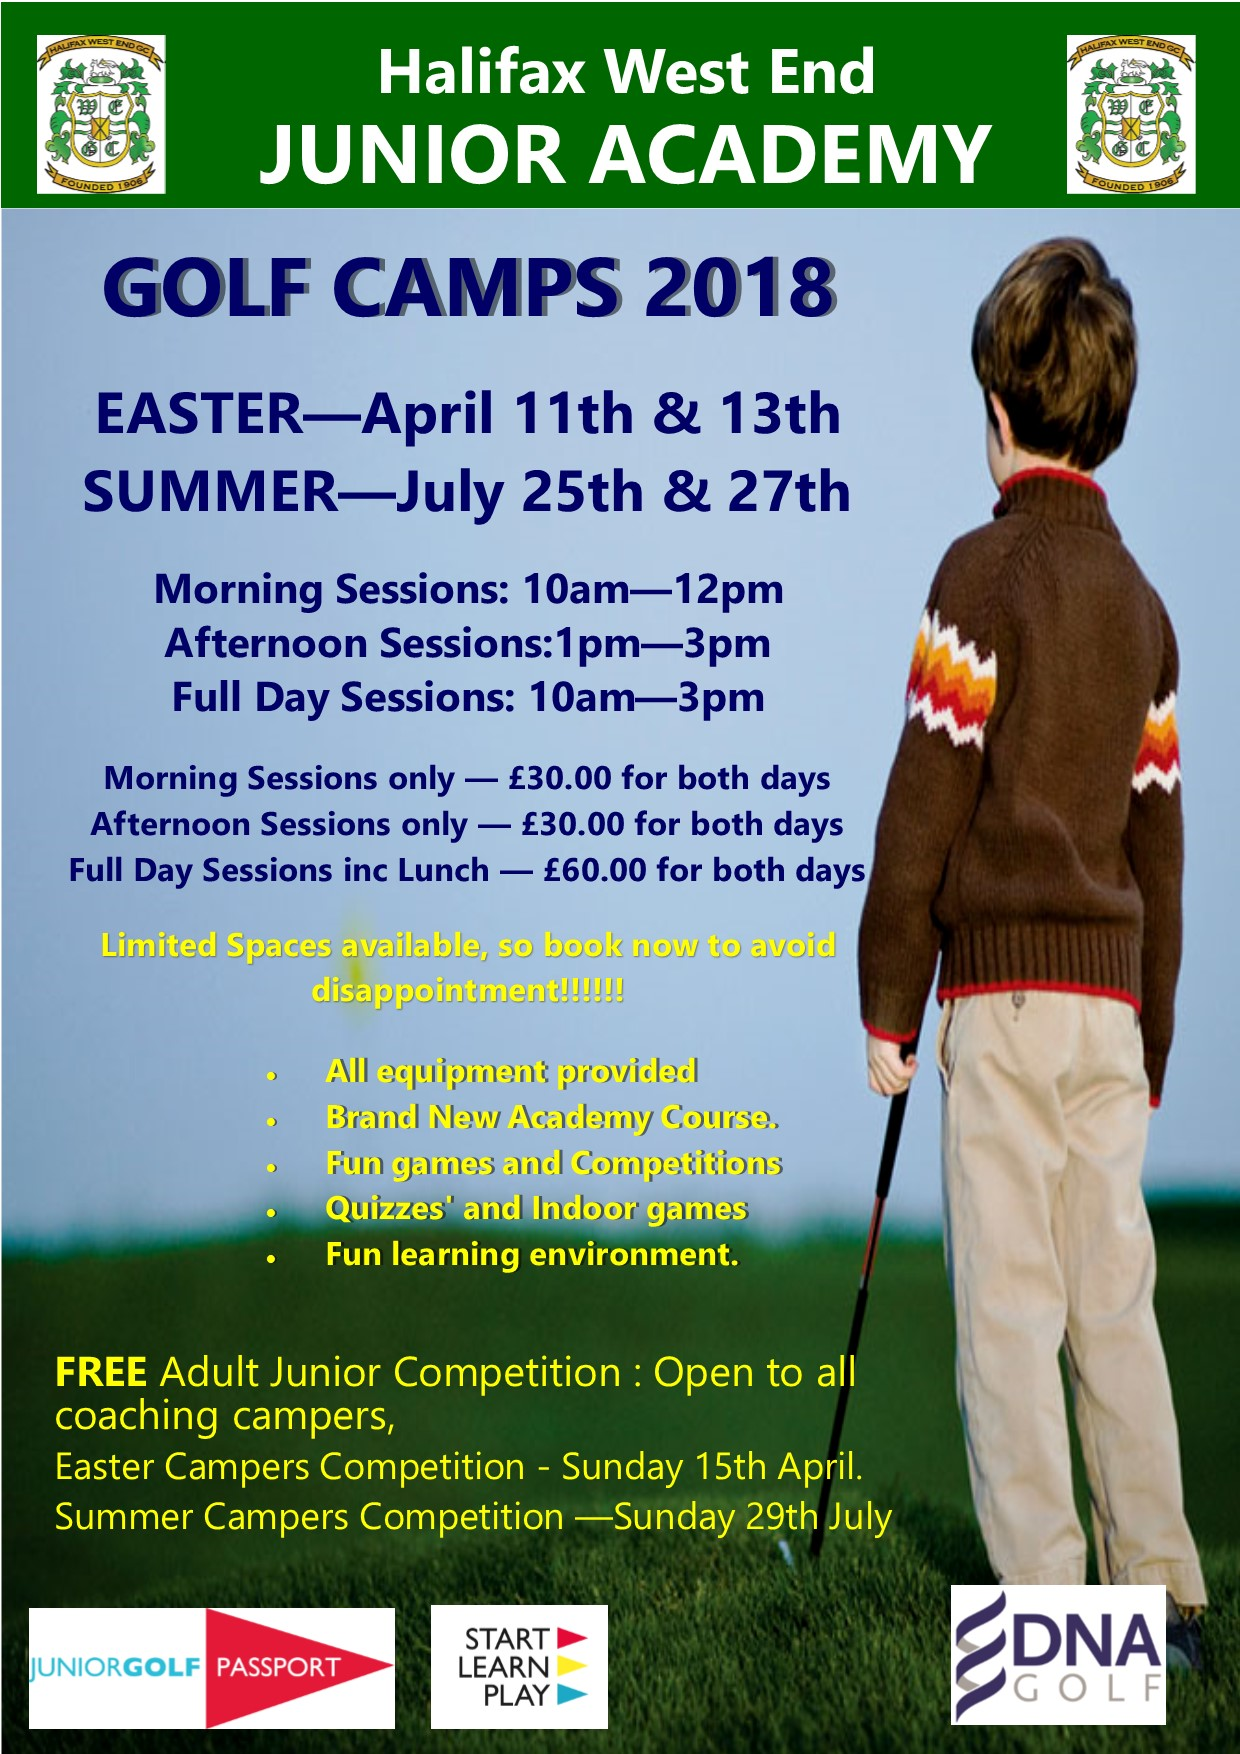 GOLF CAMPS 2018